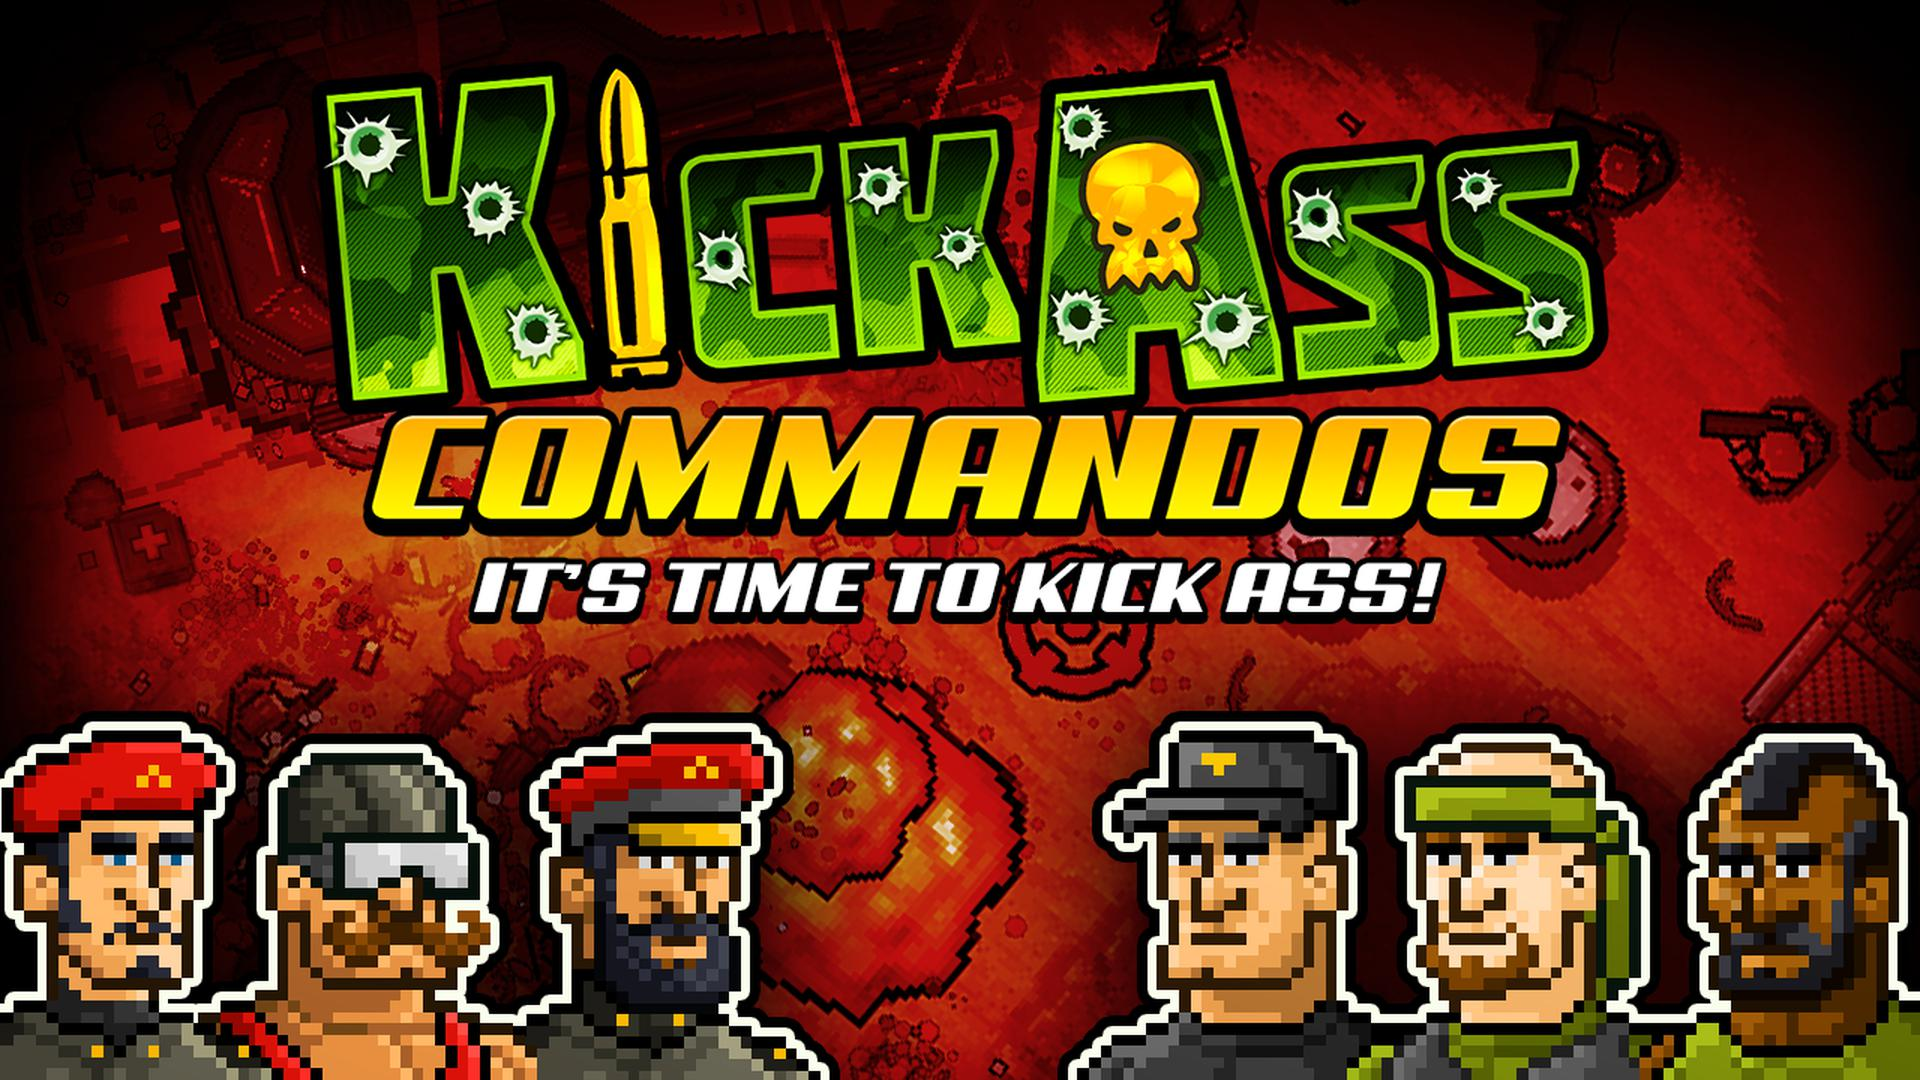 Kick Ass Commandos